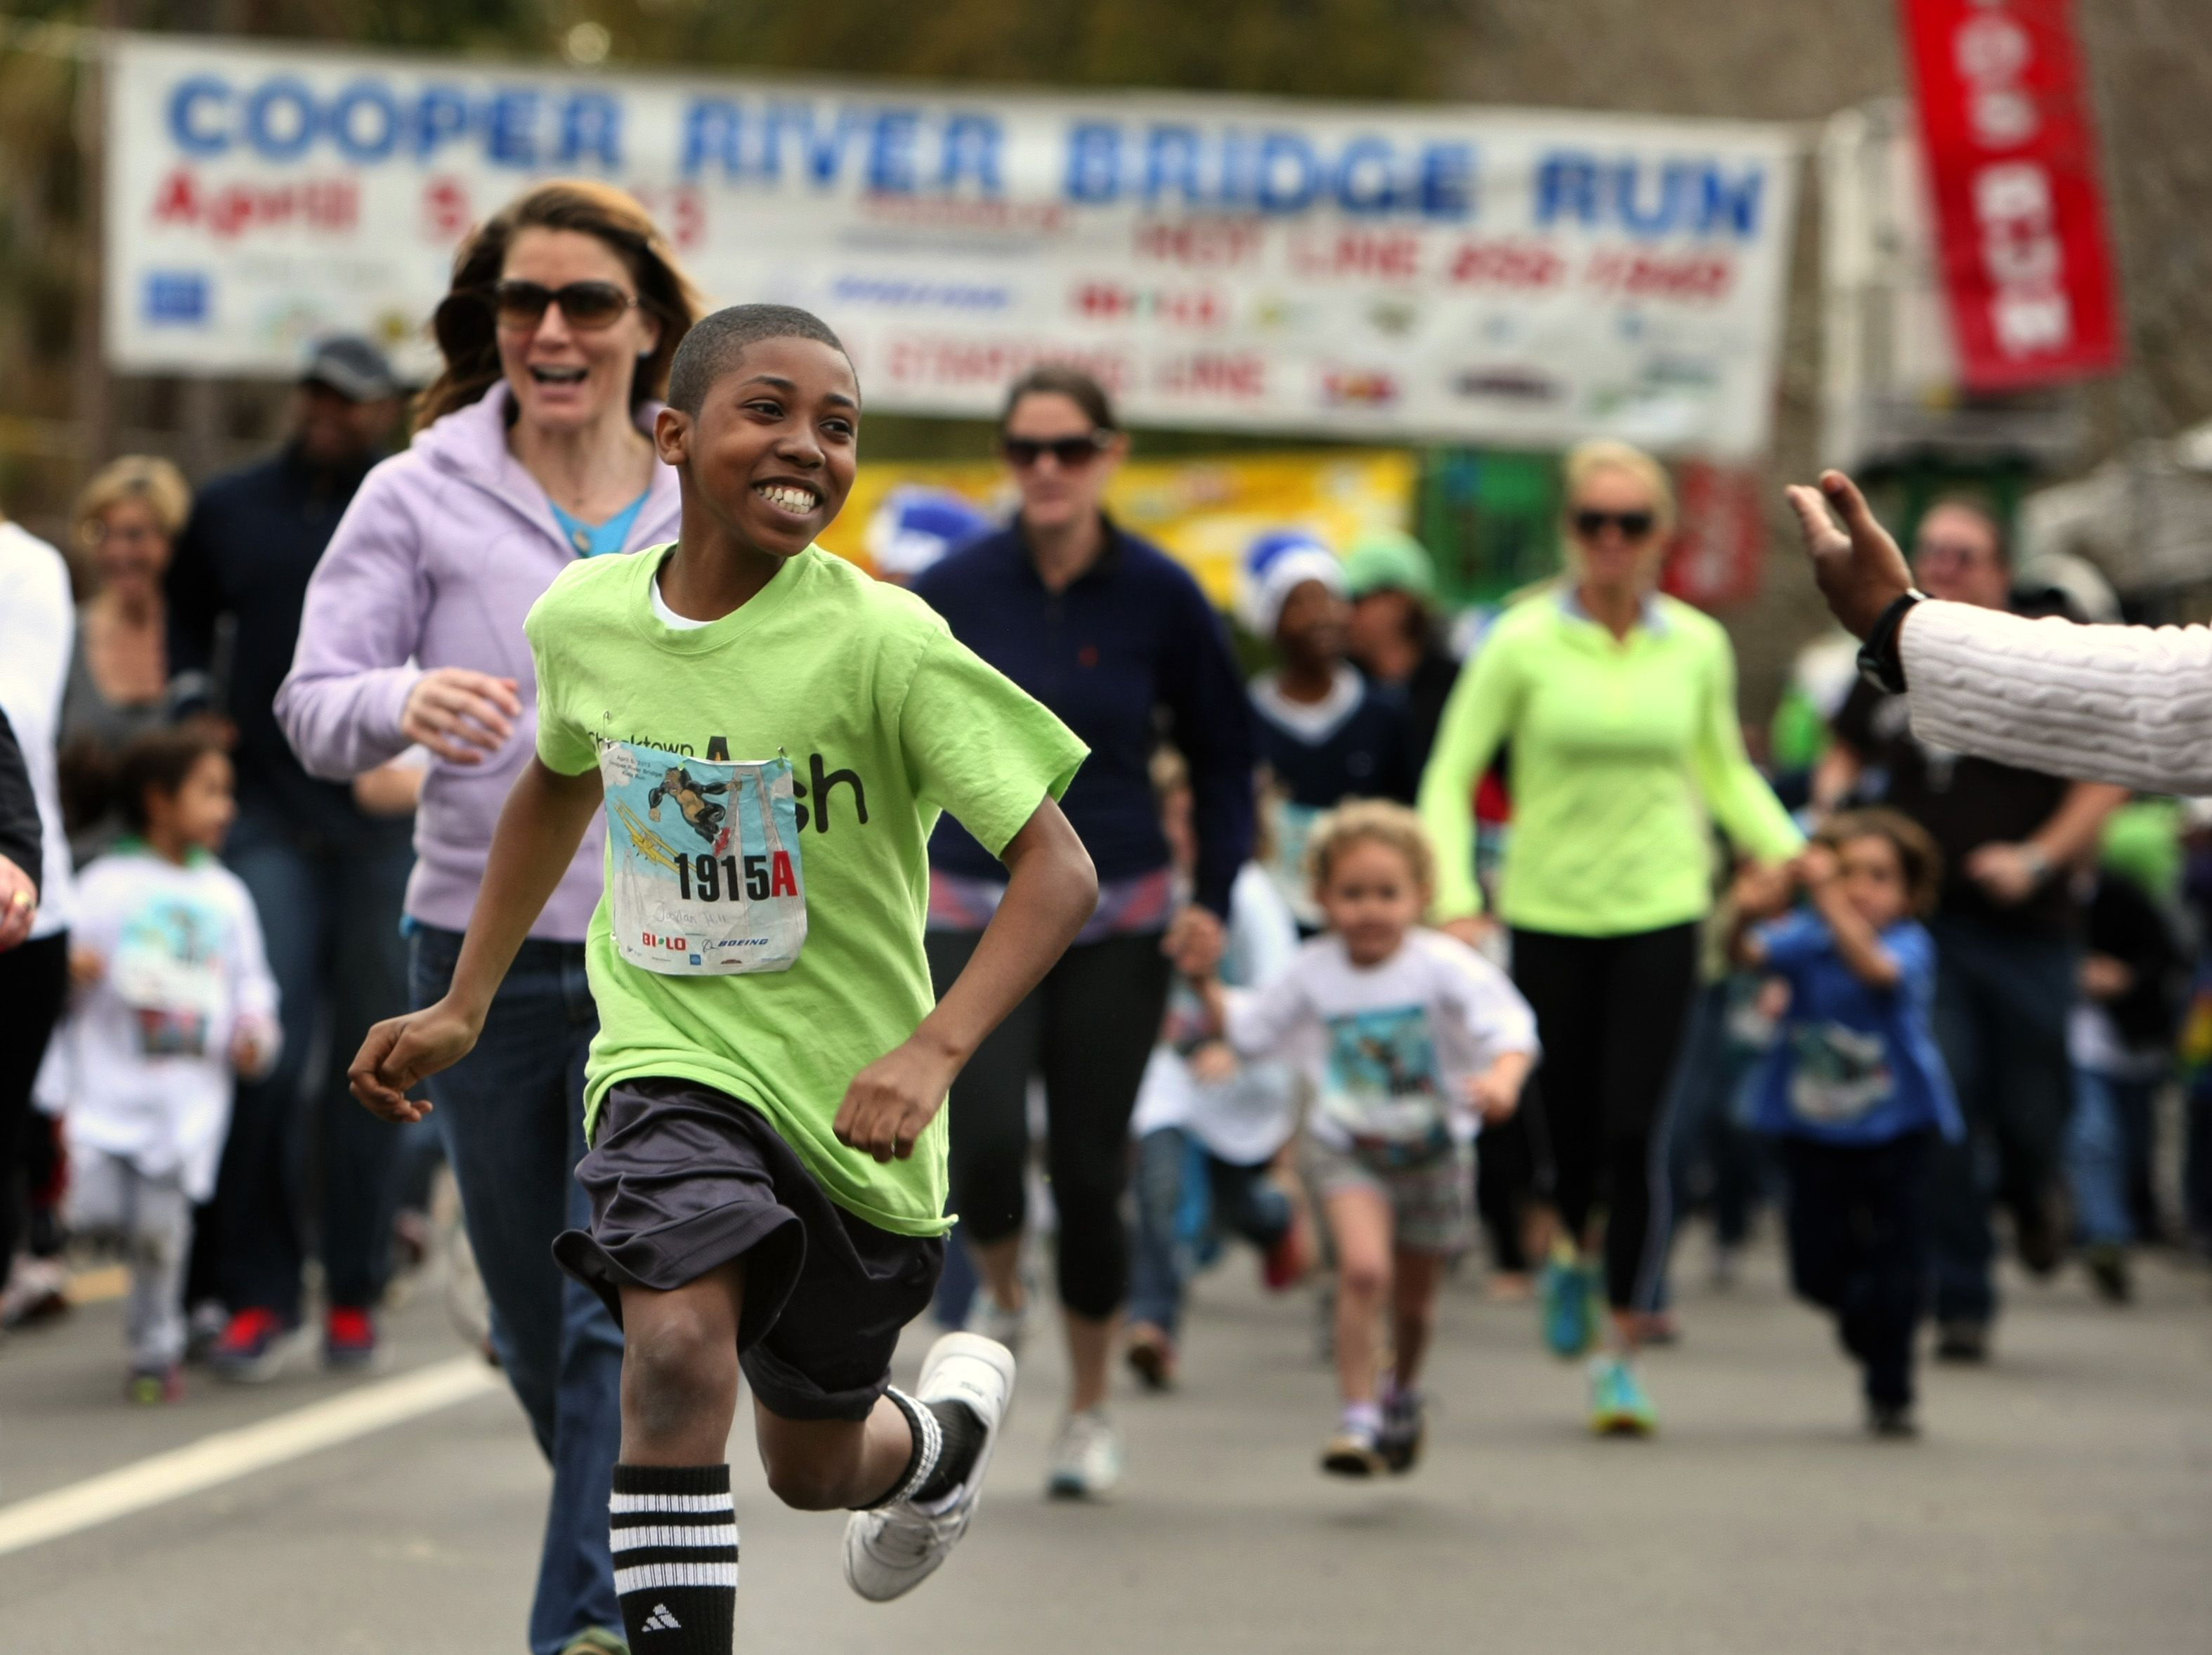 The annual Kids Run and Wonderfest is Friday at Hampton Park in downtown Charleston. (Paul Zoeller/The Post and Courier)